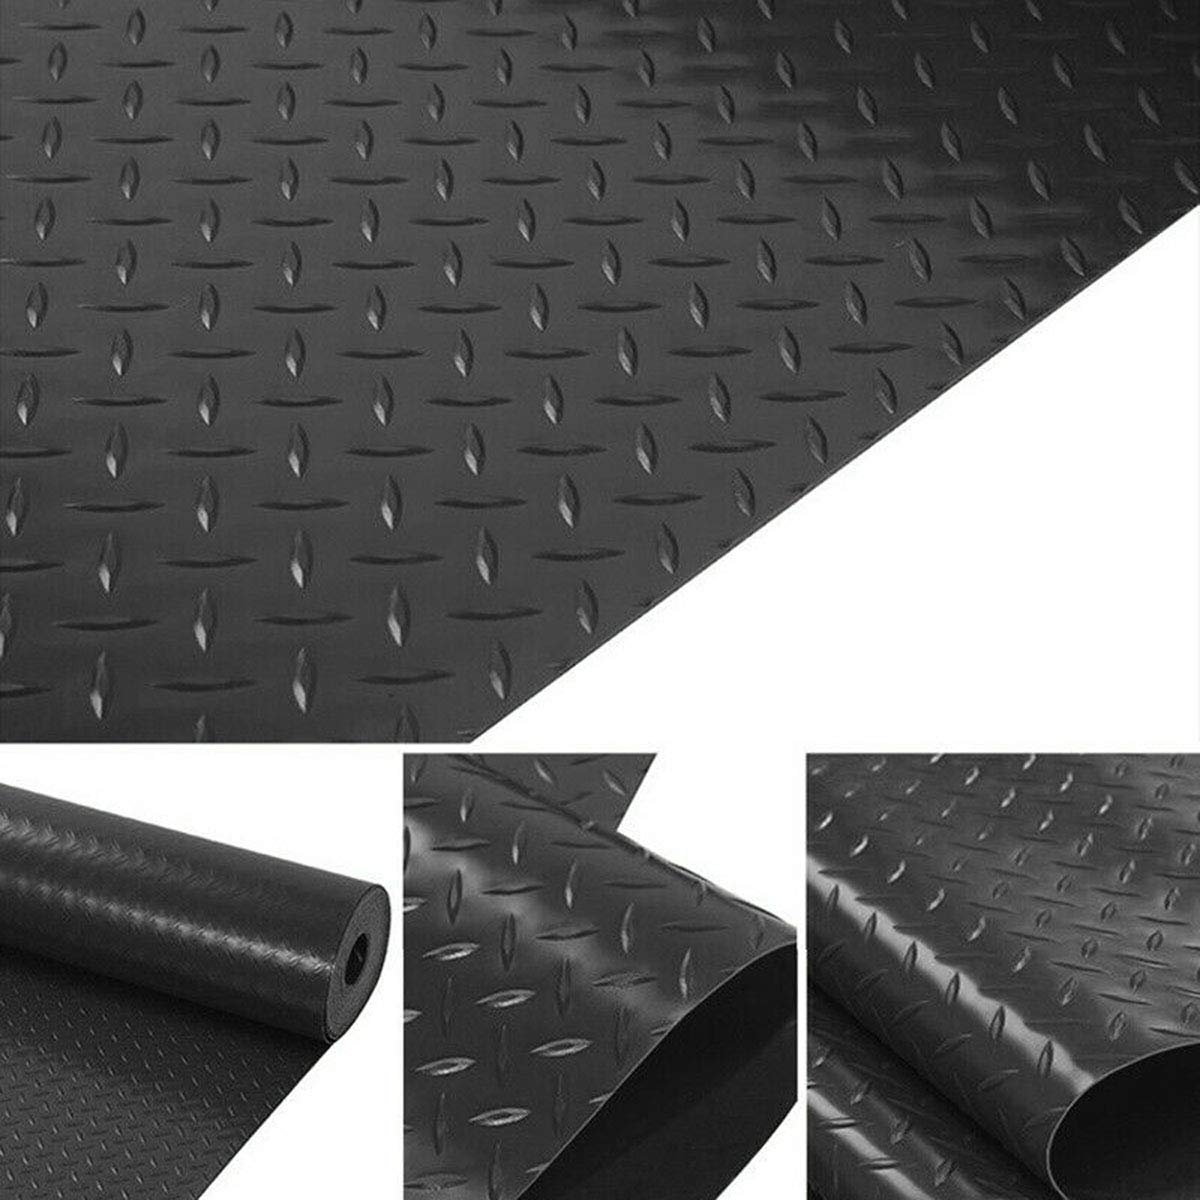 uyoyous Rubber Diamond Mat Plate Damping Insulating Carpet Protective Flooring Rolls 3.3' Width x 16.4' Length x 1/8'' Thickness Cuttable Universal for Gym Garage Factory